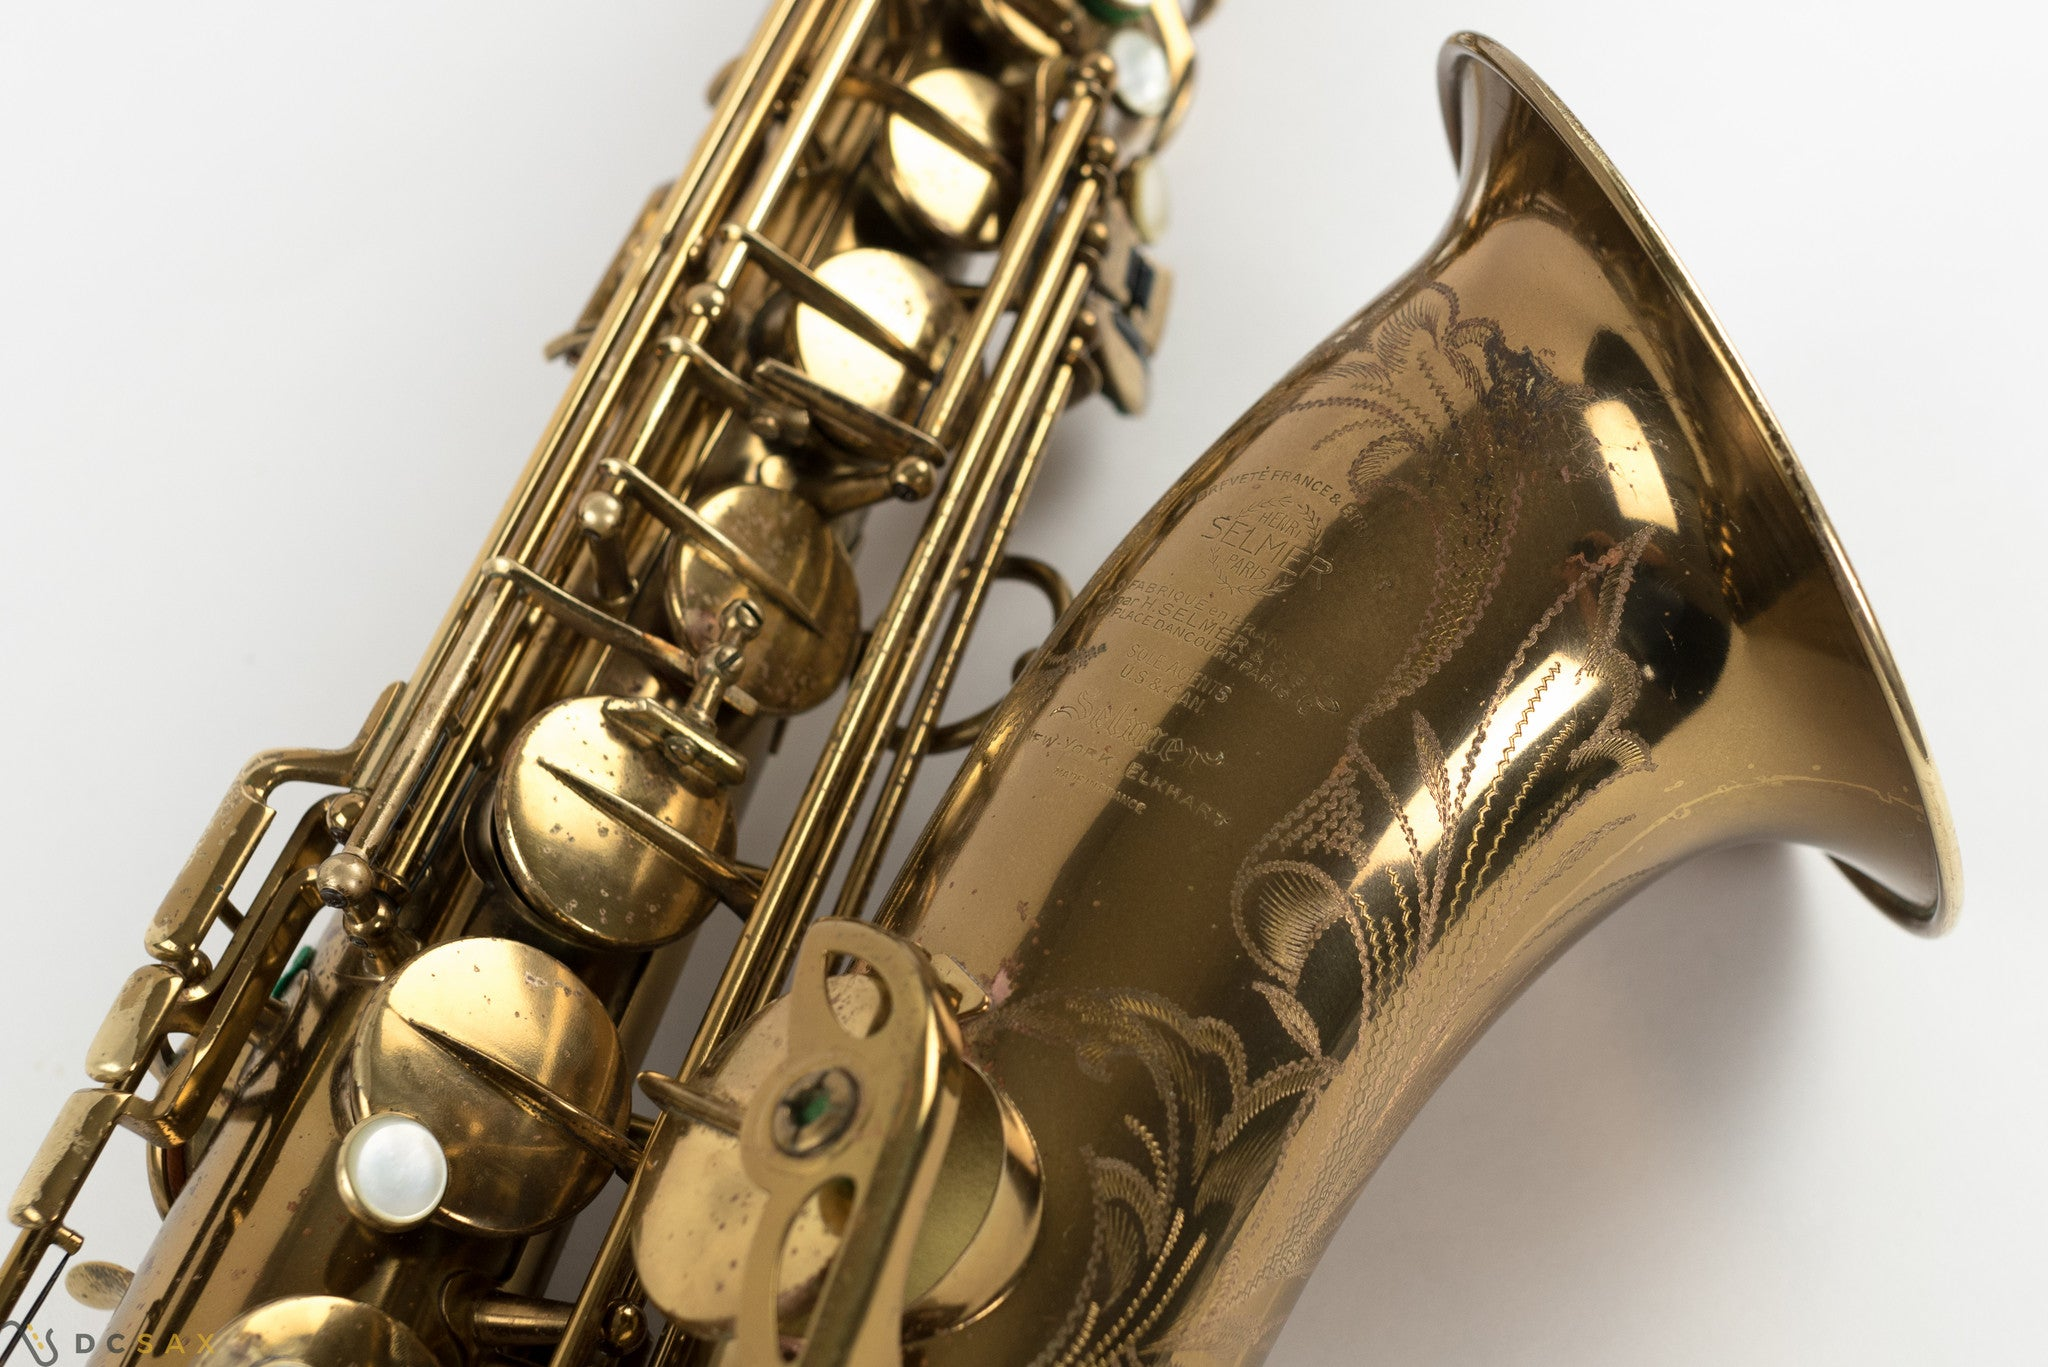 1952 49,xxx Selmer Super Balanced Action SBA Tenor Saxophone, 98% Original Lacquer